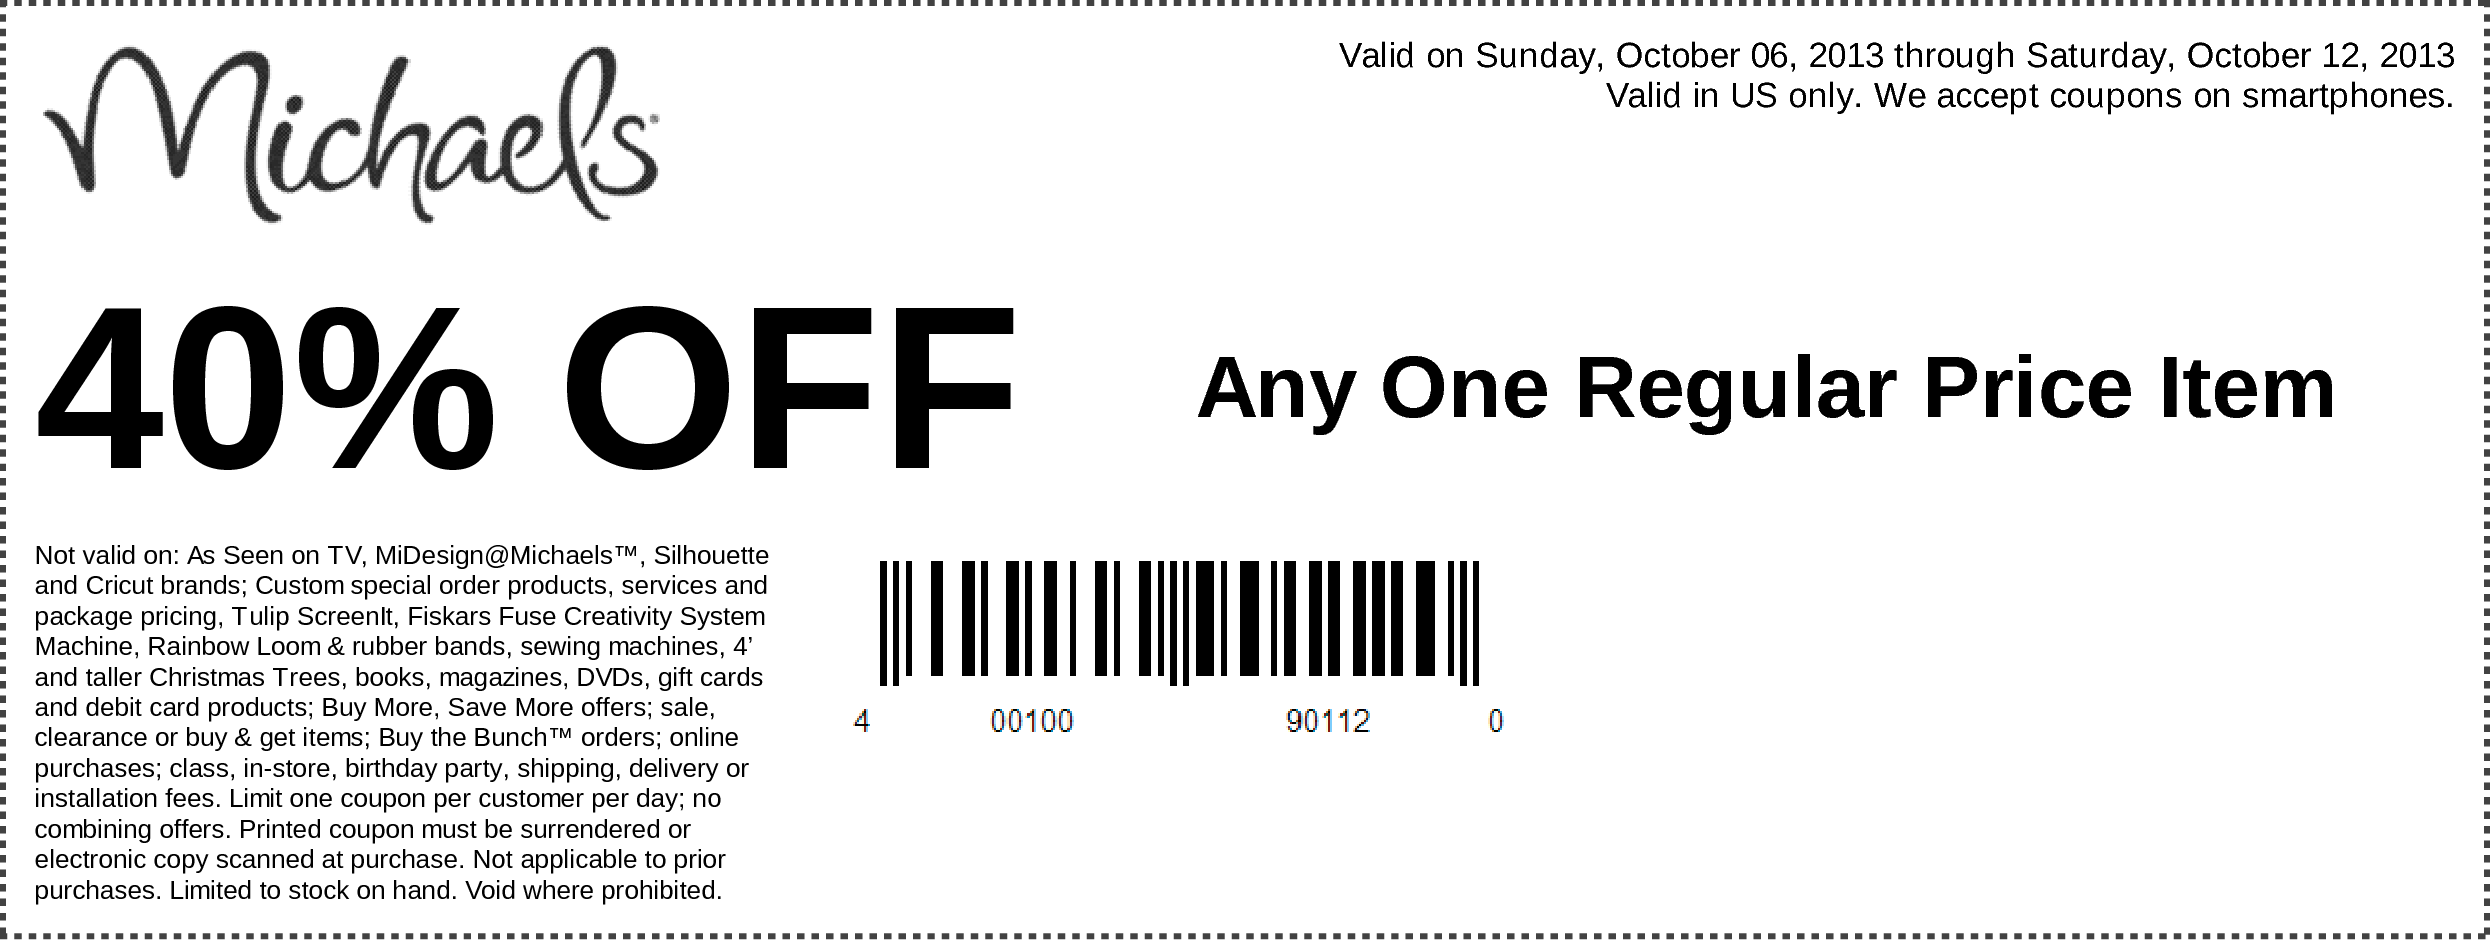 off regular priced item - Spirit Halloween 50 Off Coupon